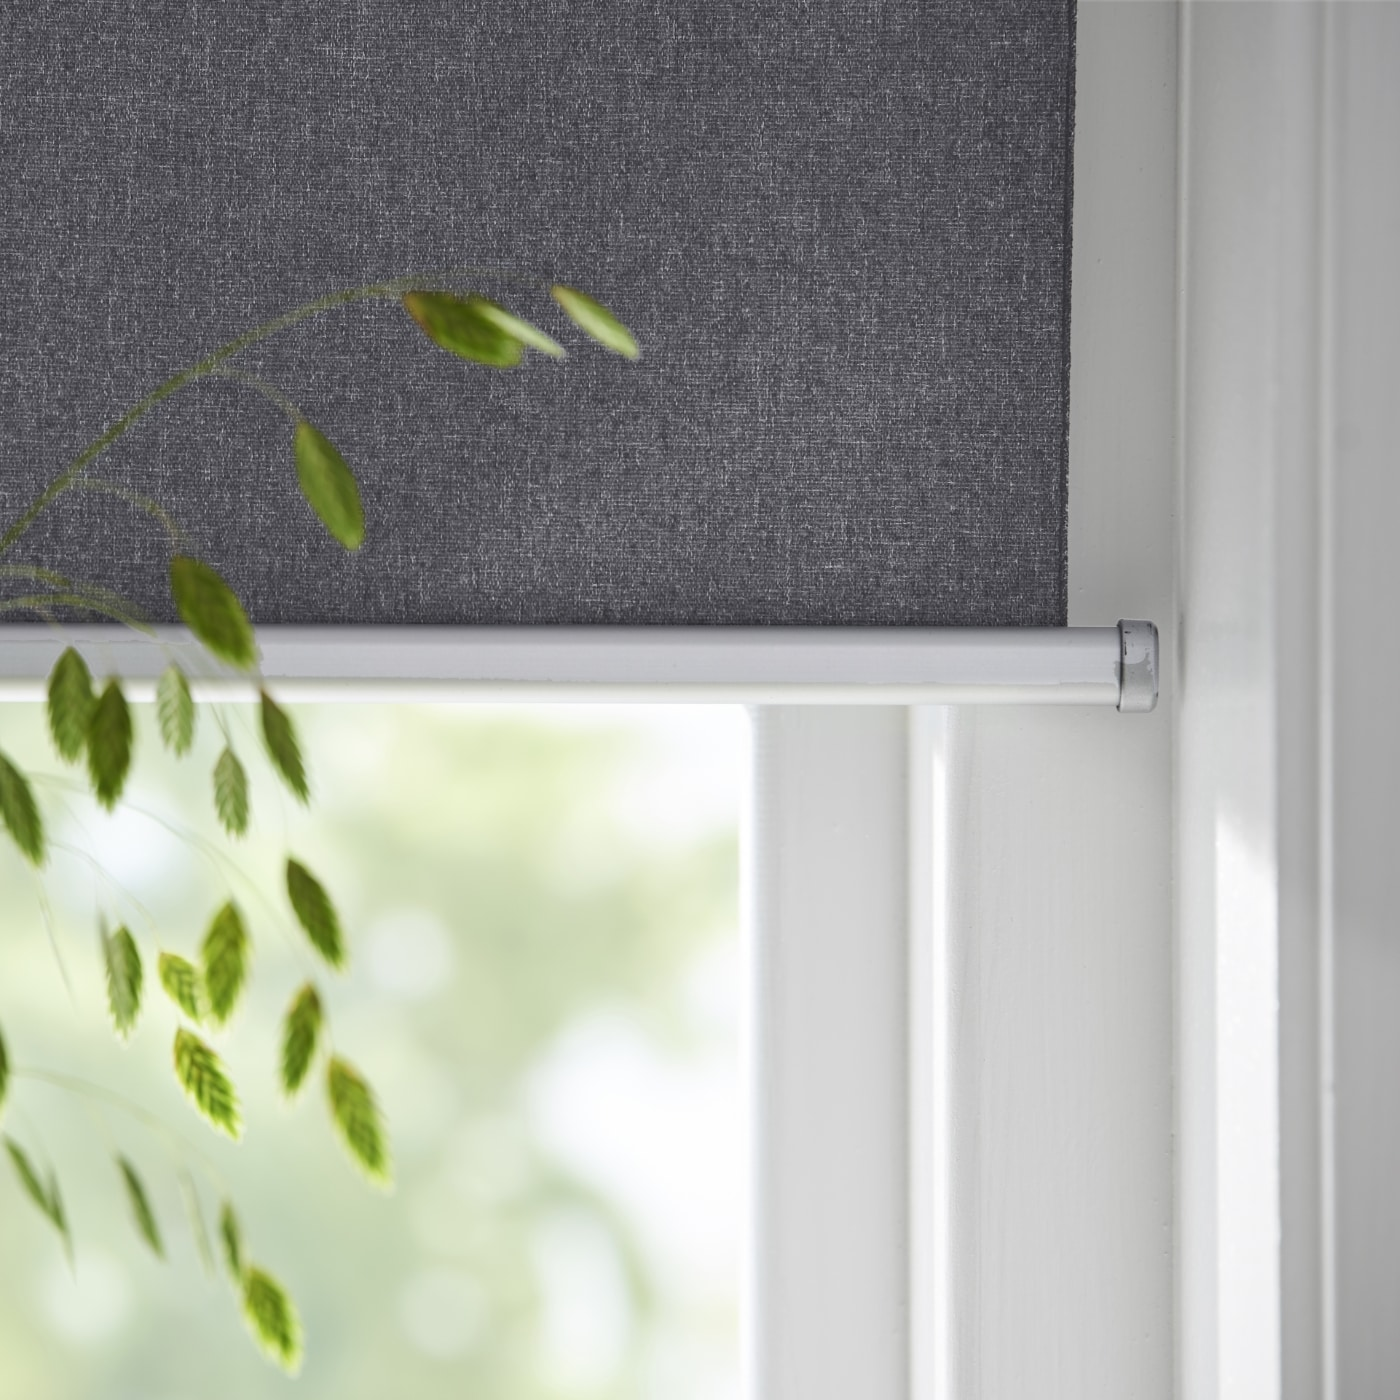 FYRTUR smart window blind rolled out, shown against a white background.